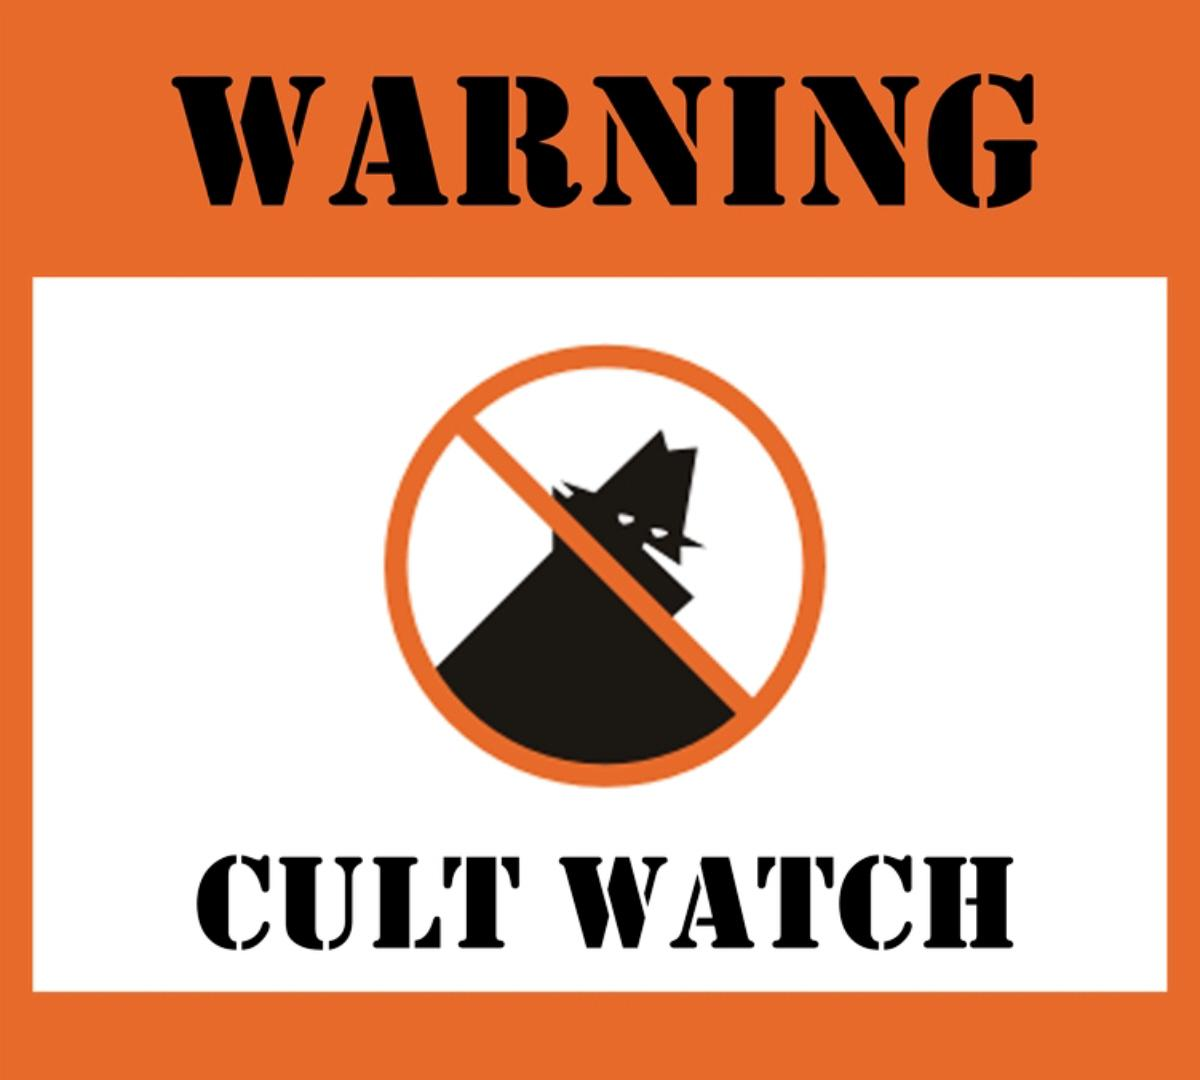 01 Cult Watch